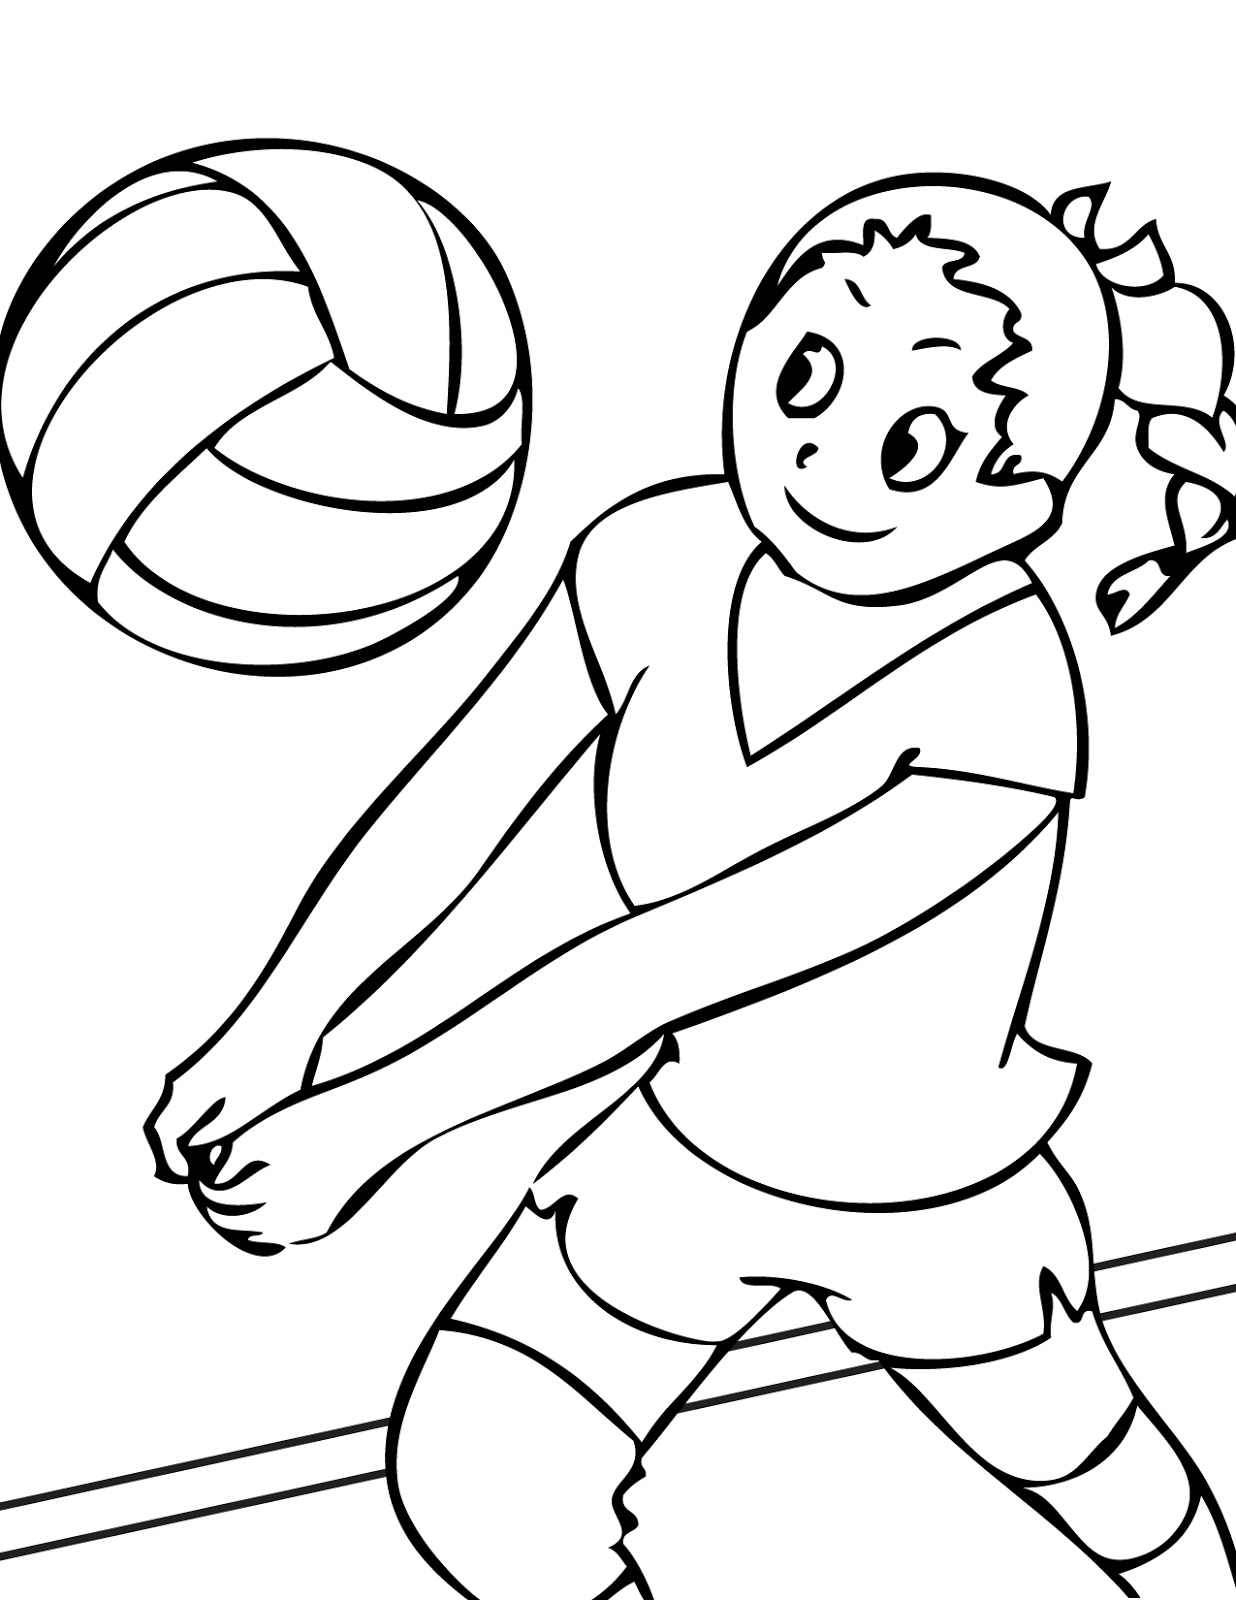 My Healthy Life Soccer Volleyball